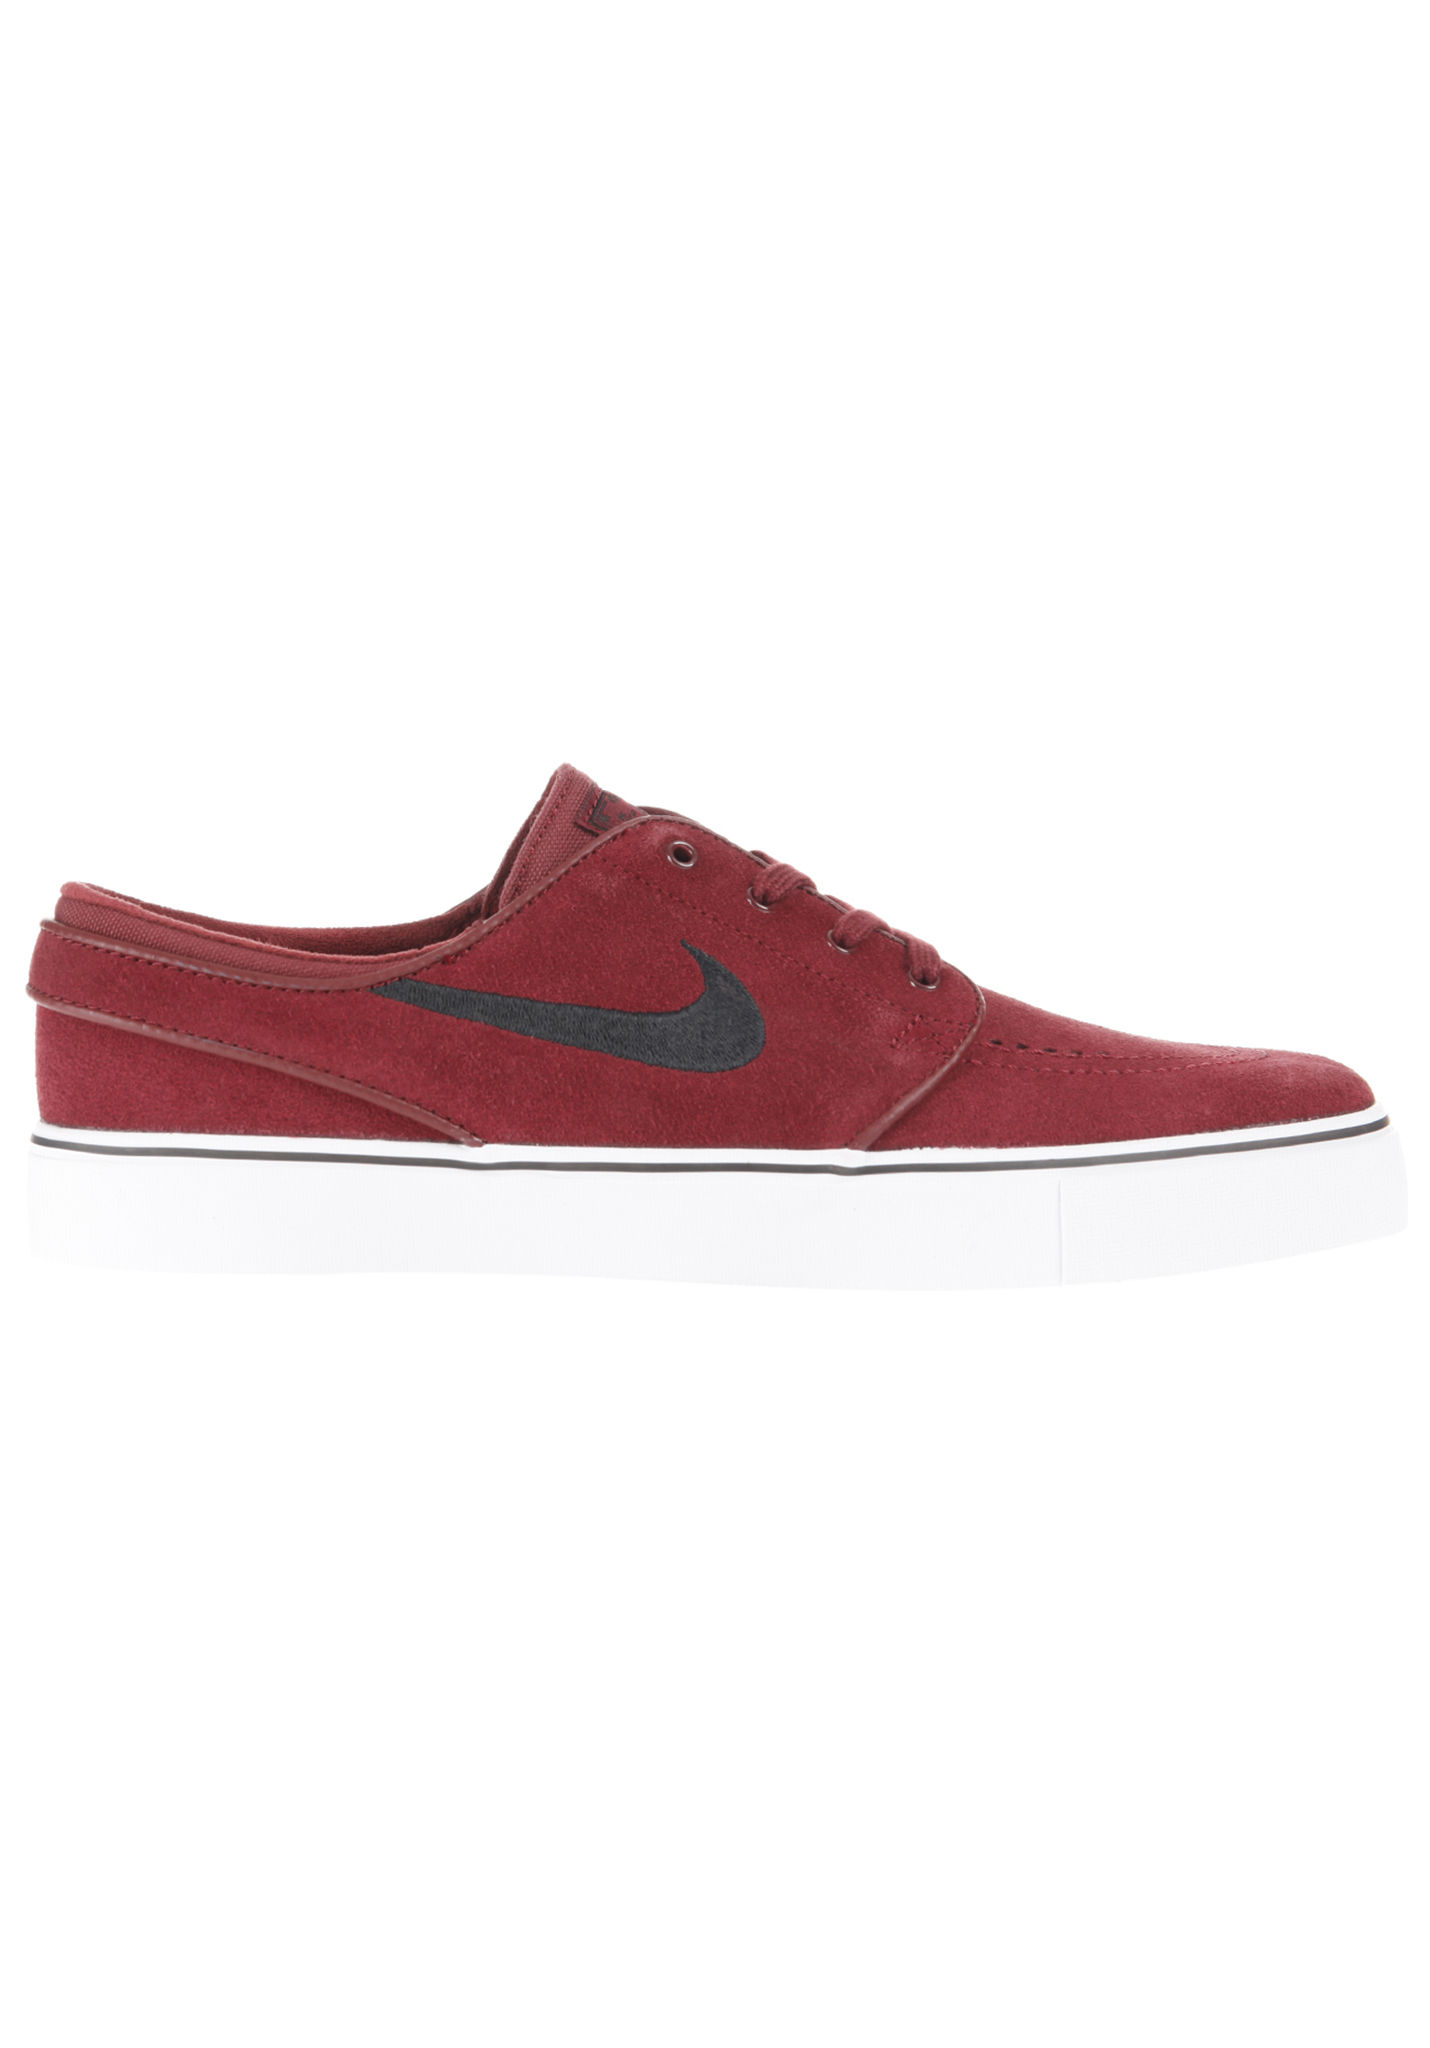 NIKE SB Zoom Stefan Janoski - Sneakers - Red - Planet Sports 8b28323cc439